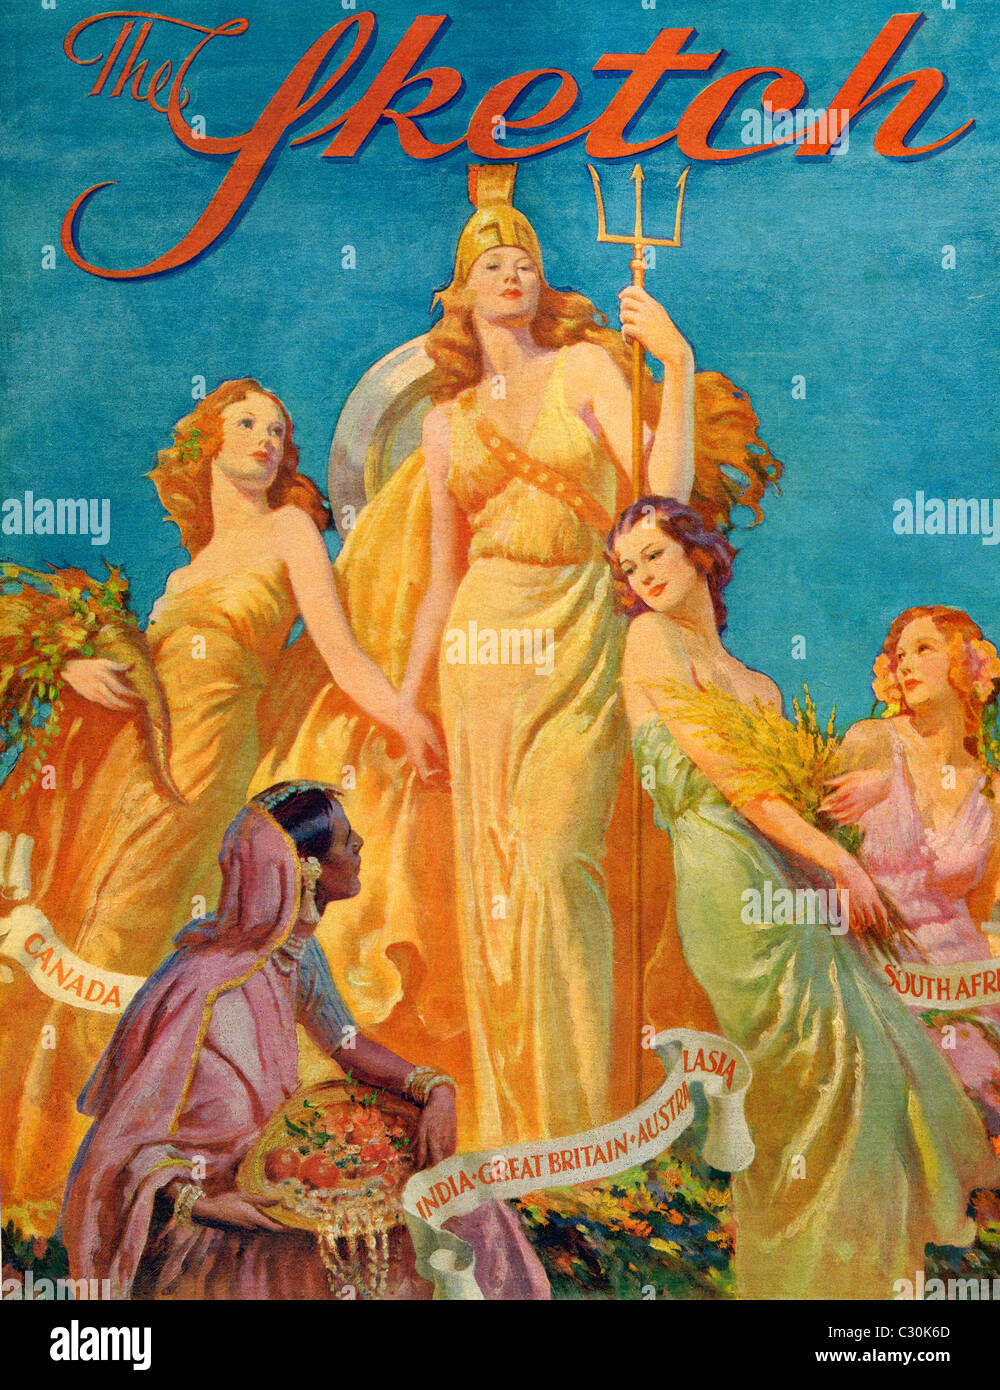 Front cover from The Sketch magazine, special coronation number, published 1937. Depicting Britannia - Stock Image